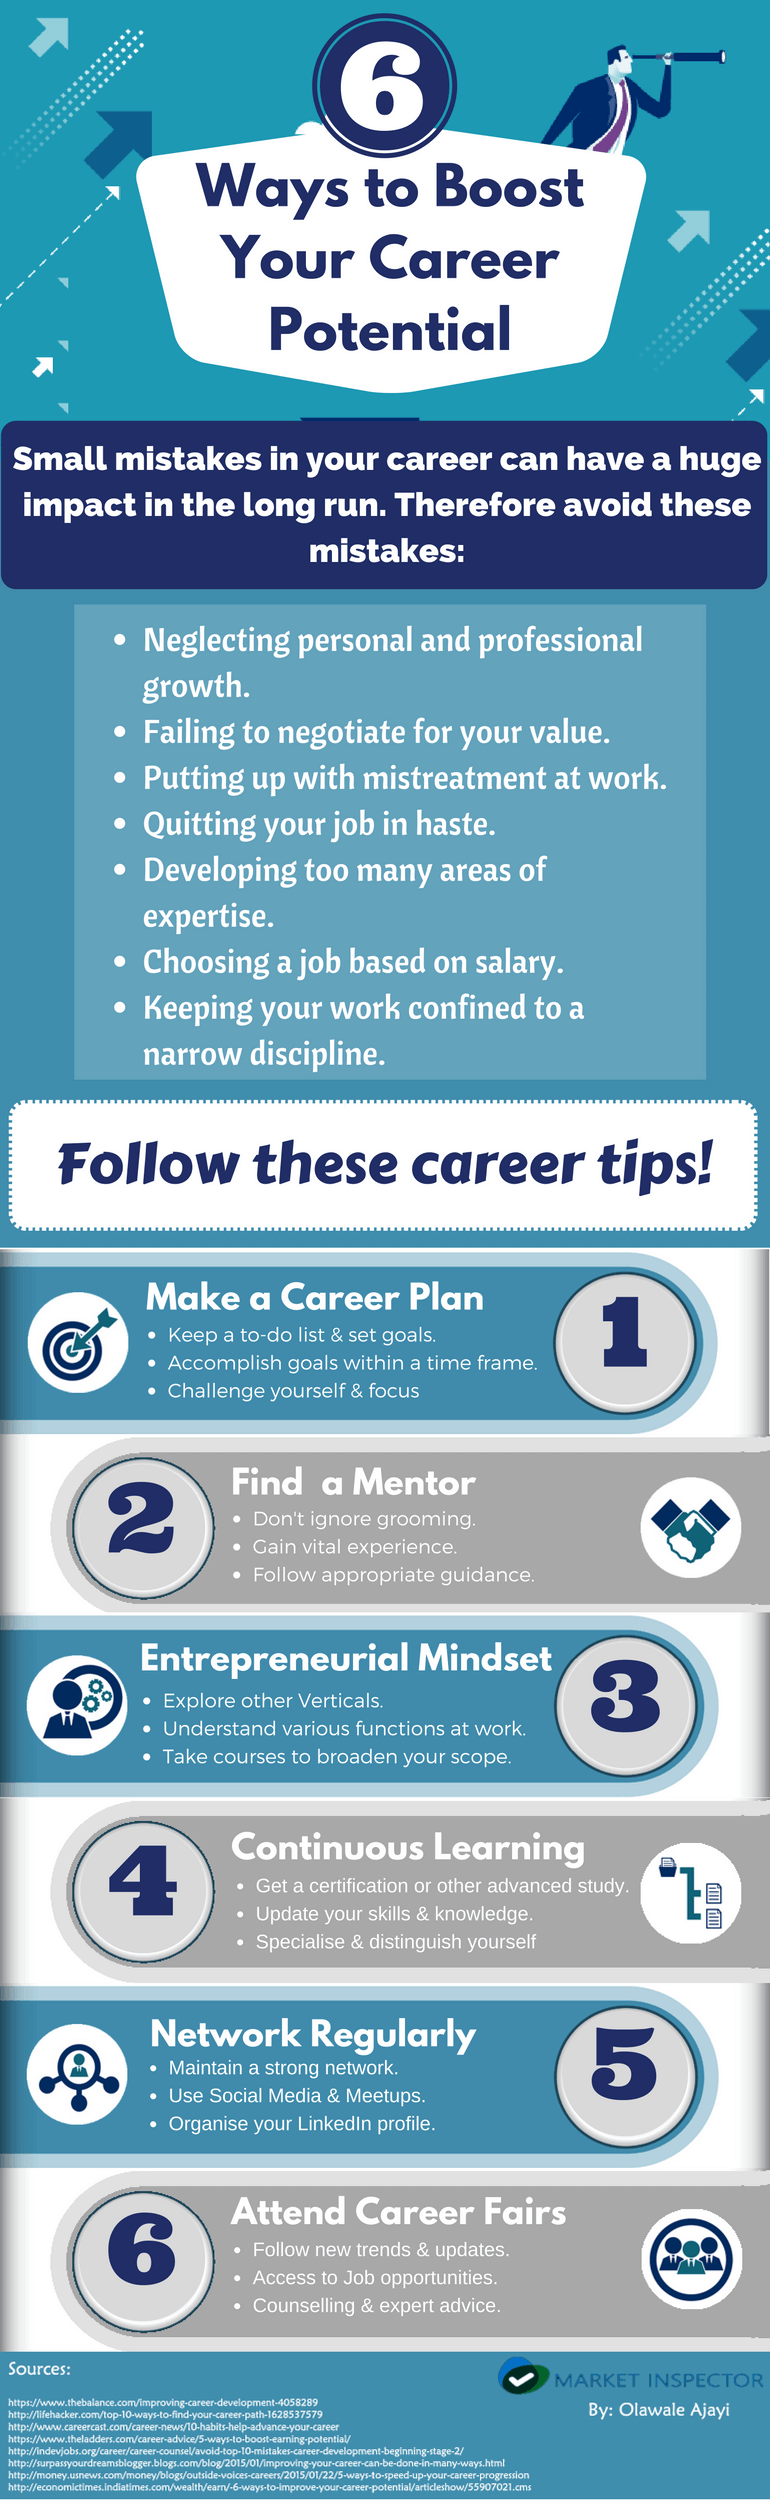 a guide to developing your career prospect boost your career potential